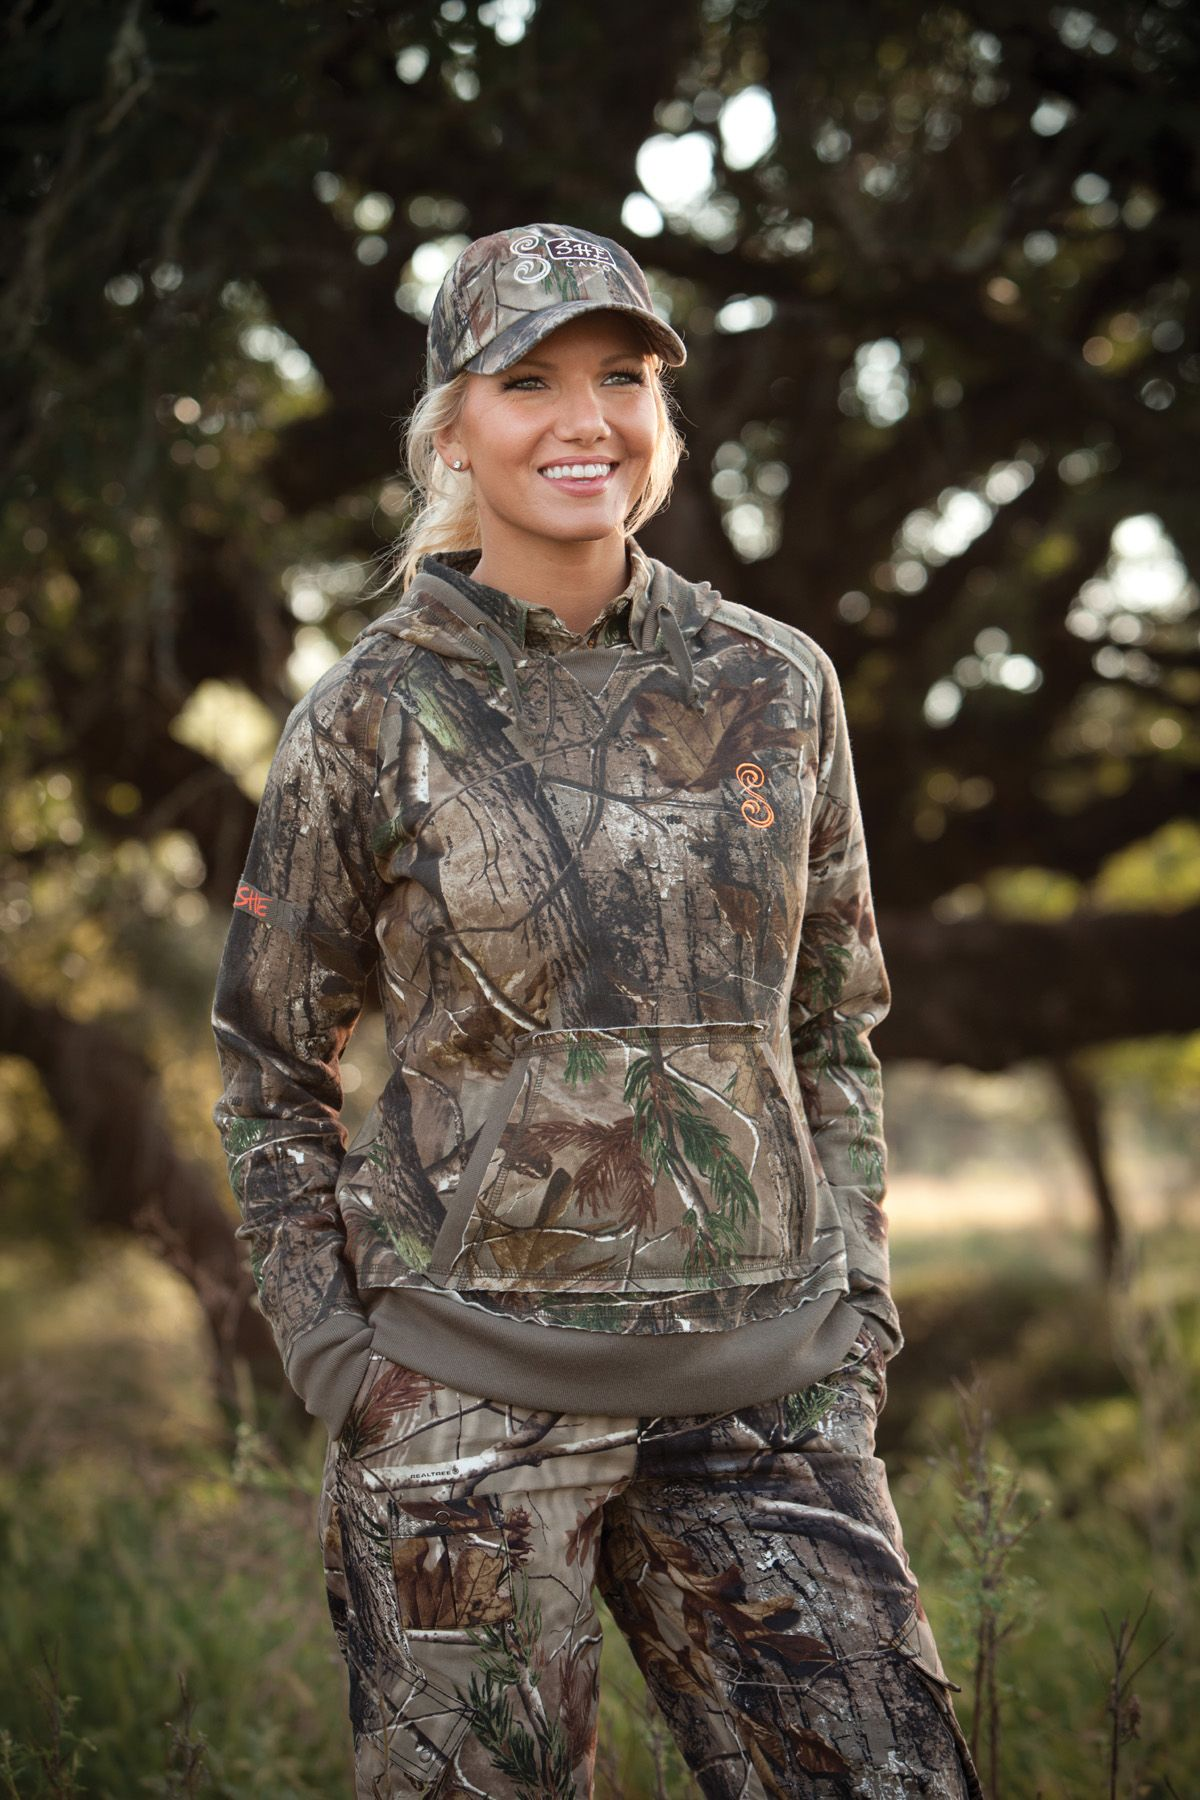 dfa0e93d06  SHE Outdoor Apparel Vintage in Realtree AP Camo Hoodie LOVE this brand!   realtreecamo  womenhunting